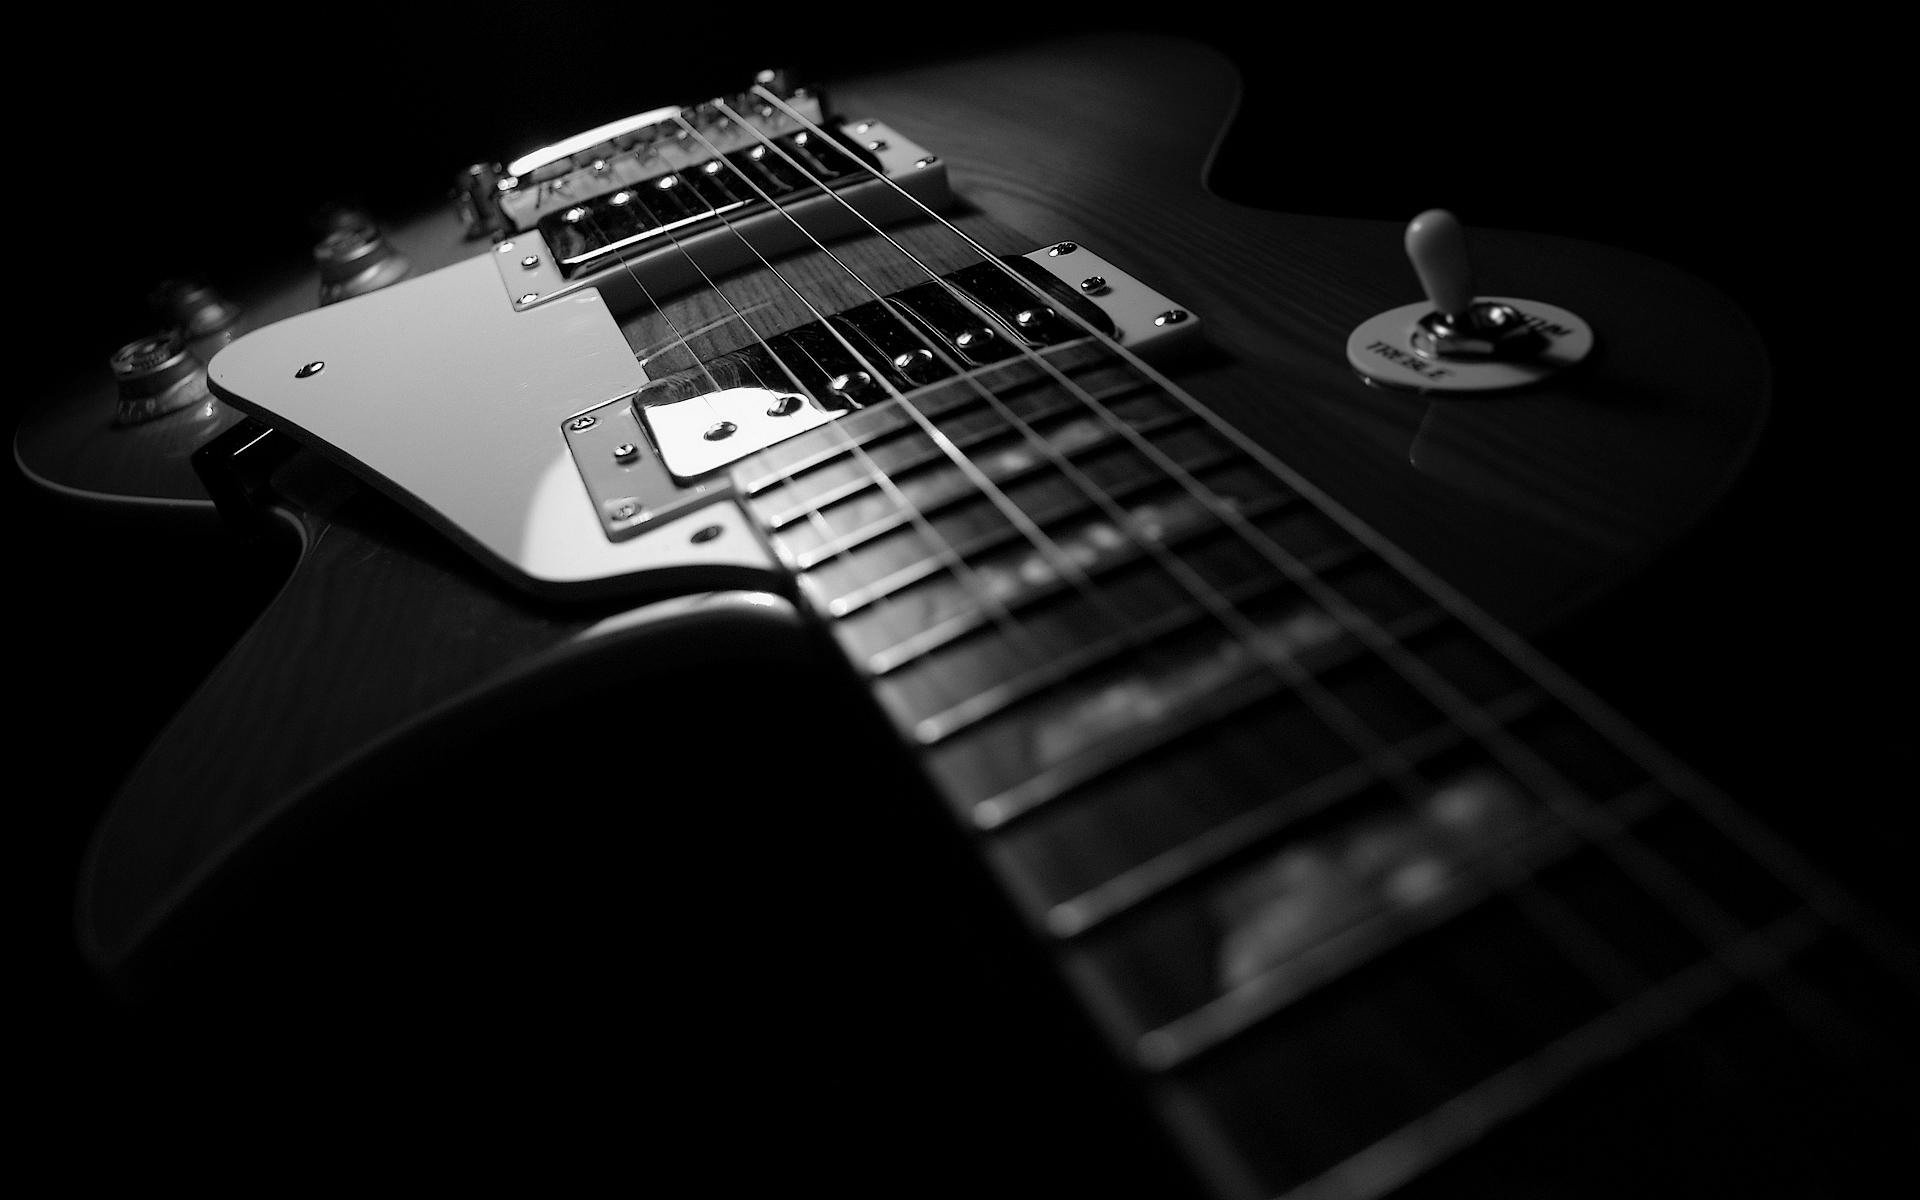 electric guitar desktop wallpaper